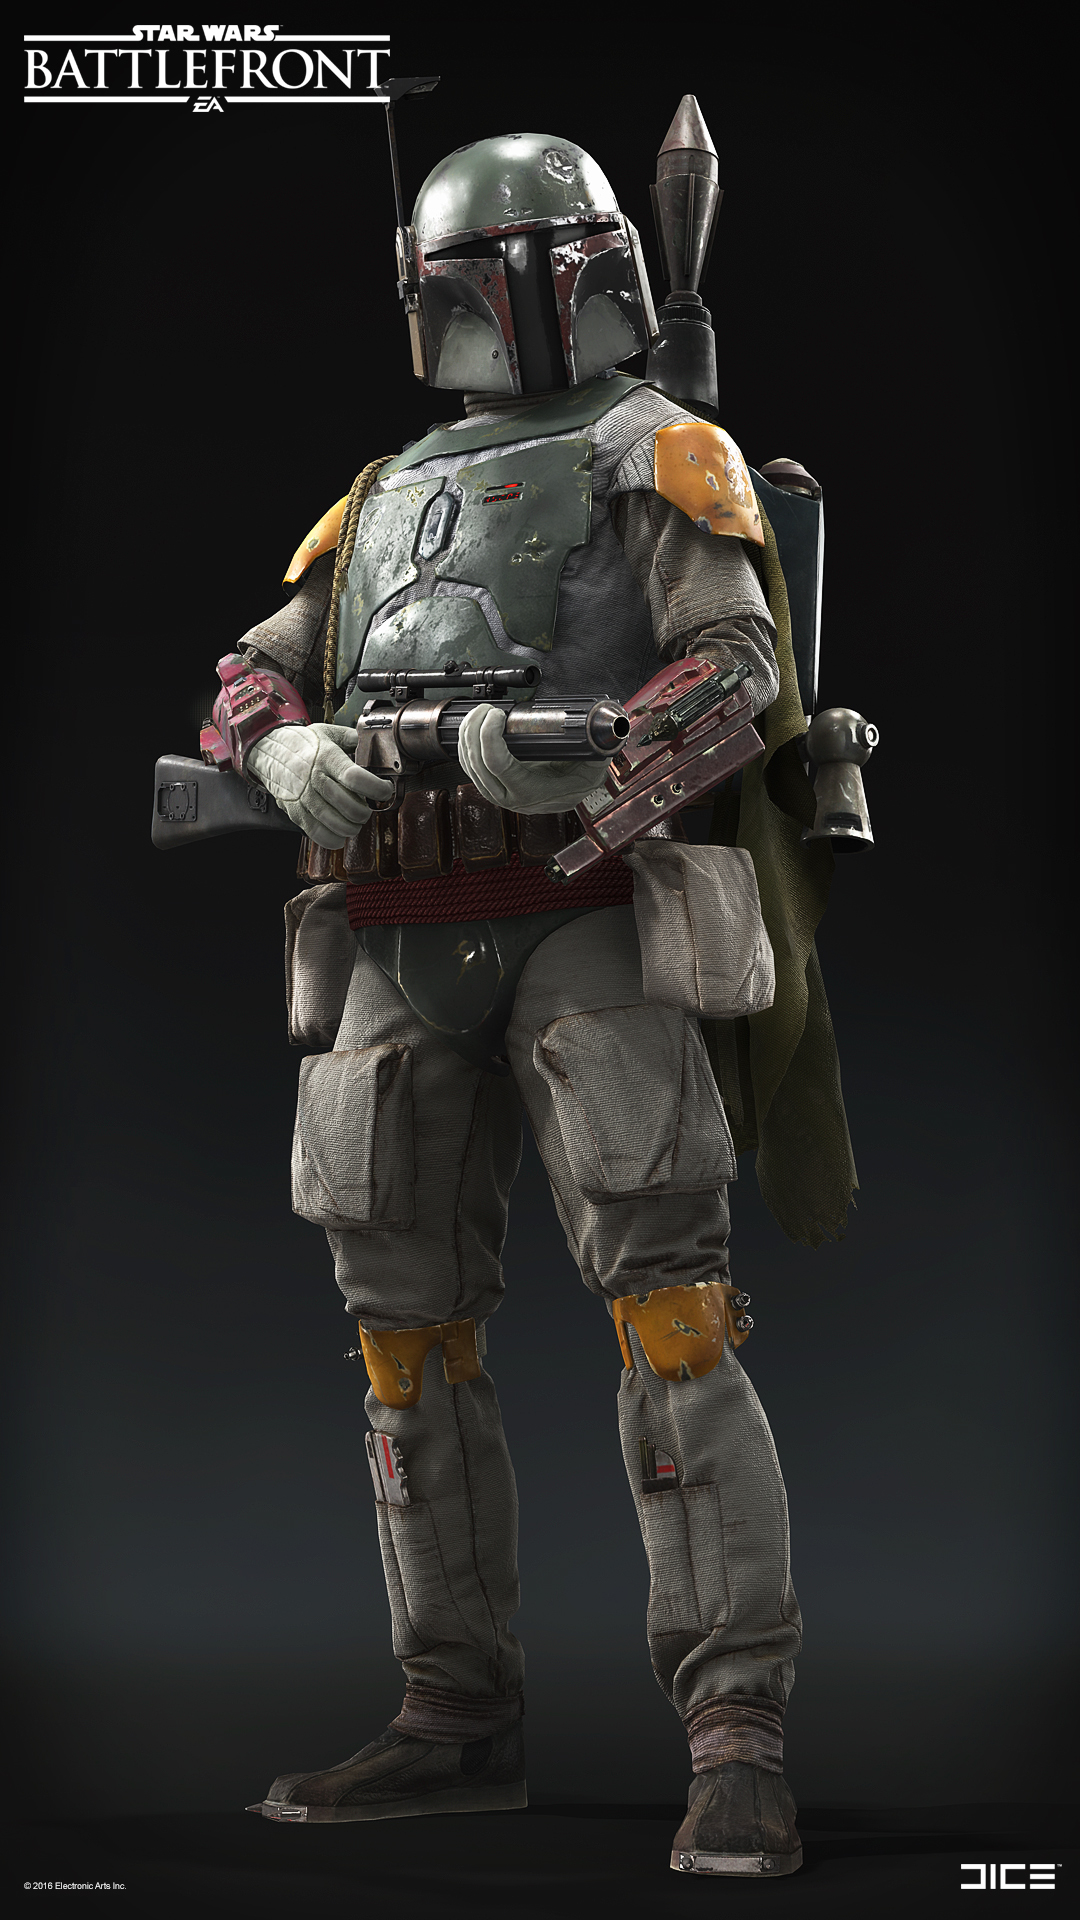 Star Wars Battlefront Boba Fett By Bjar Art 3d